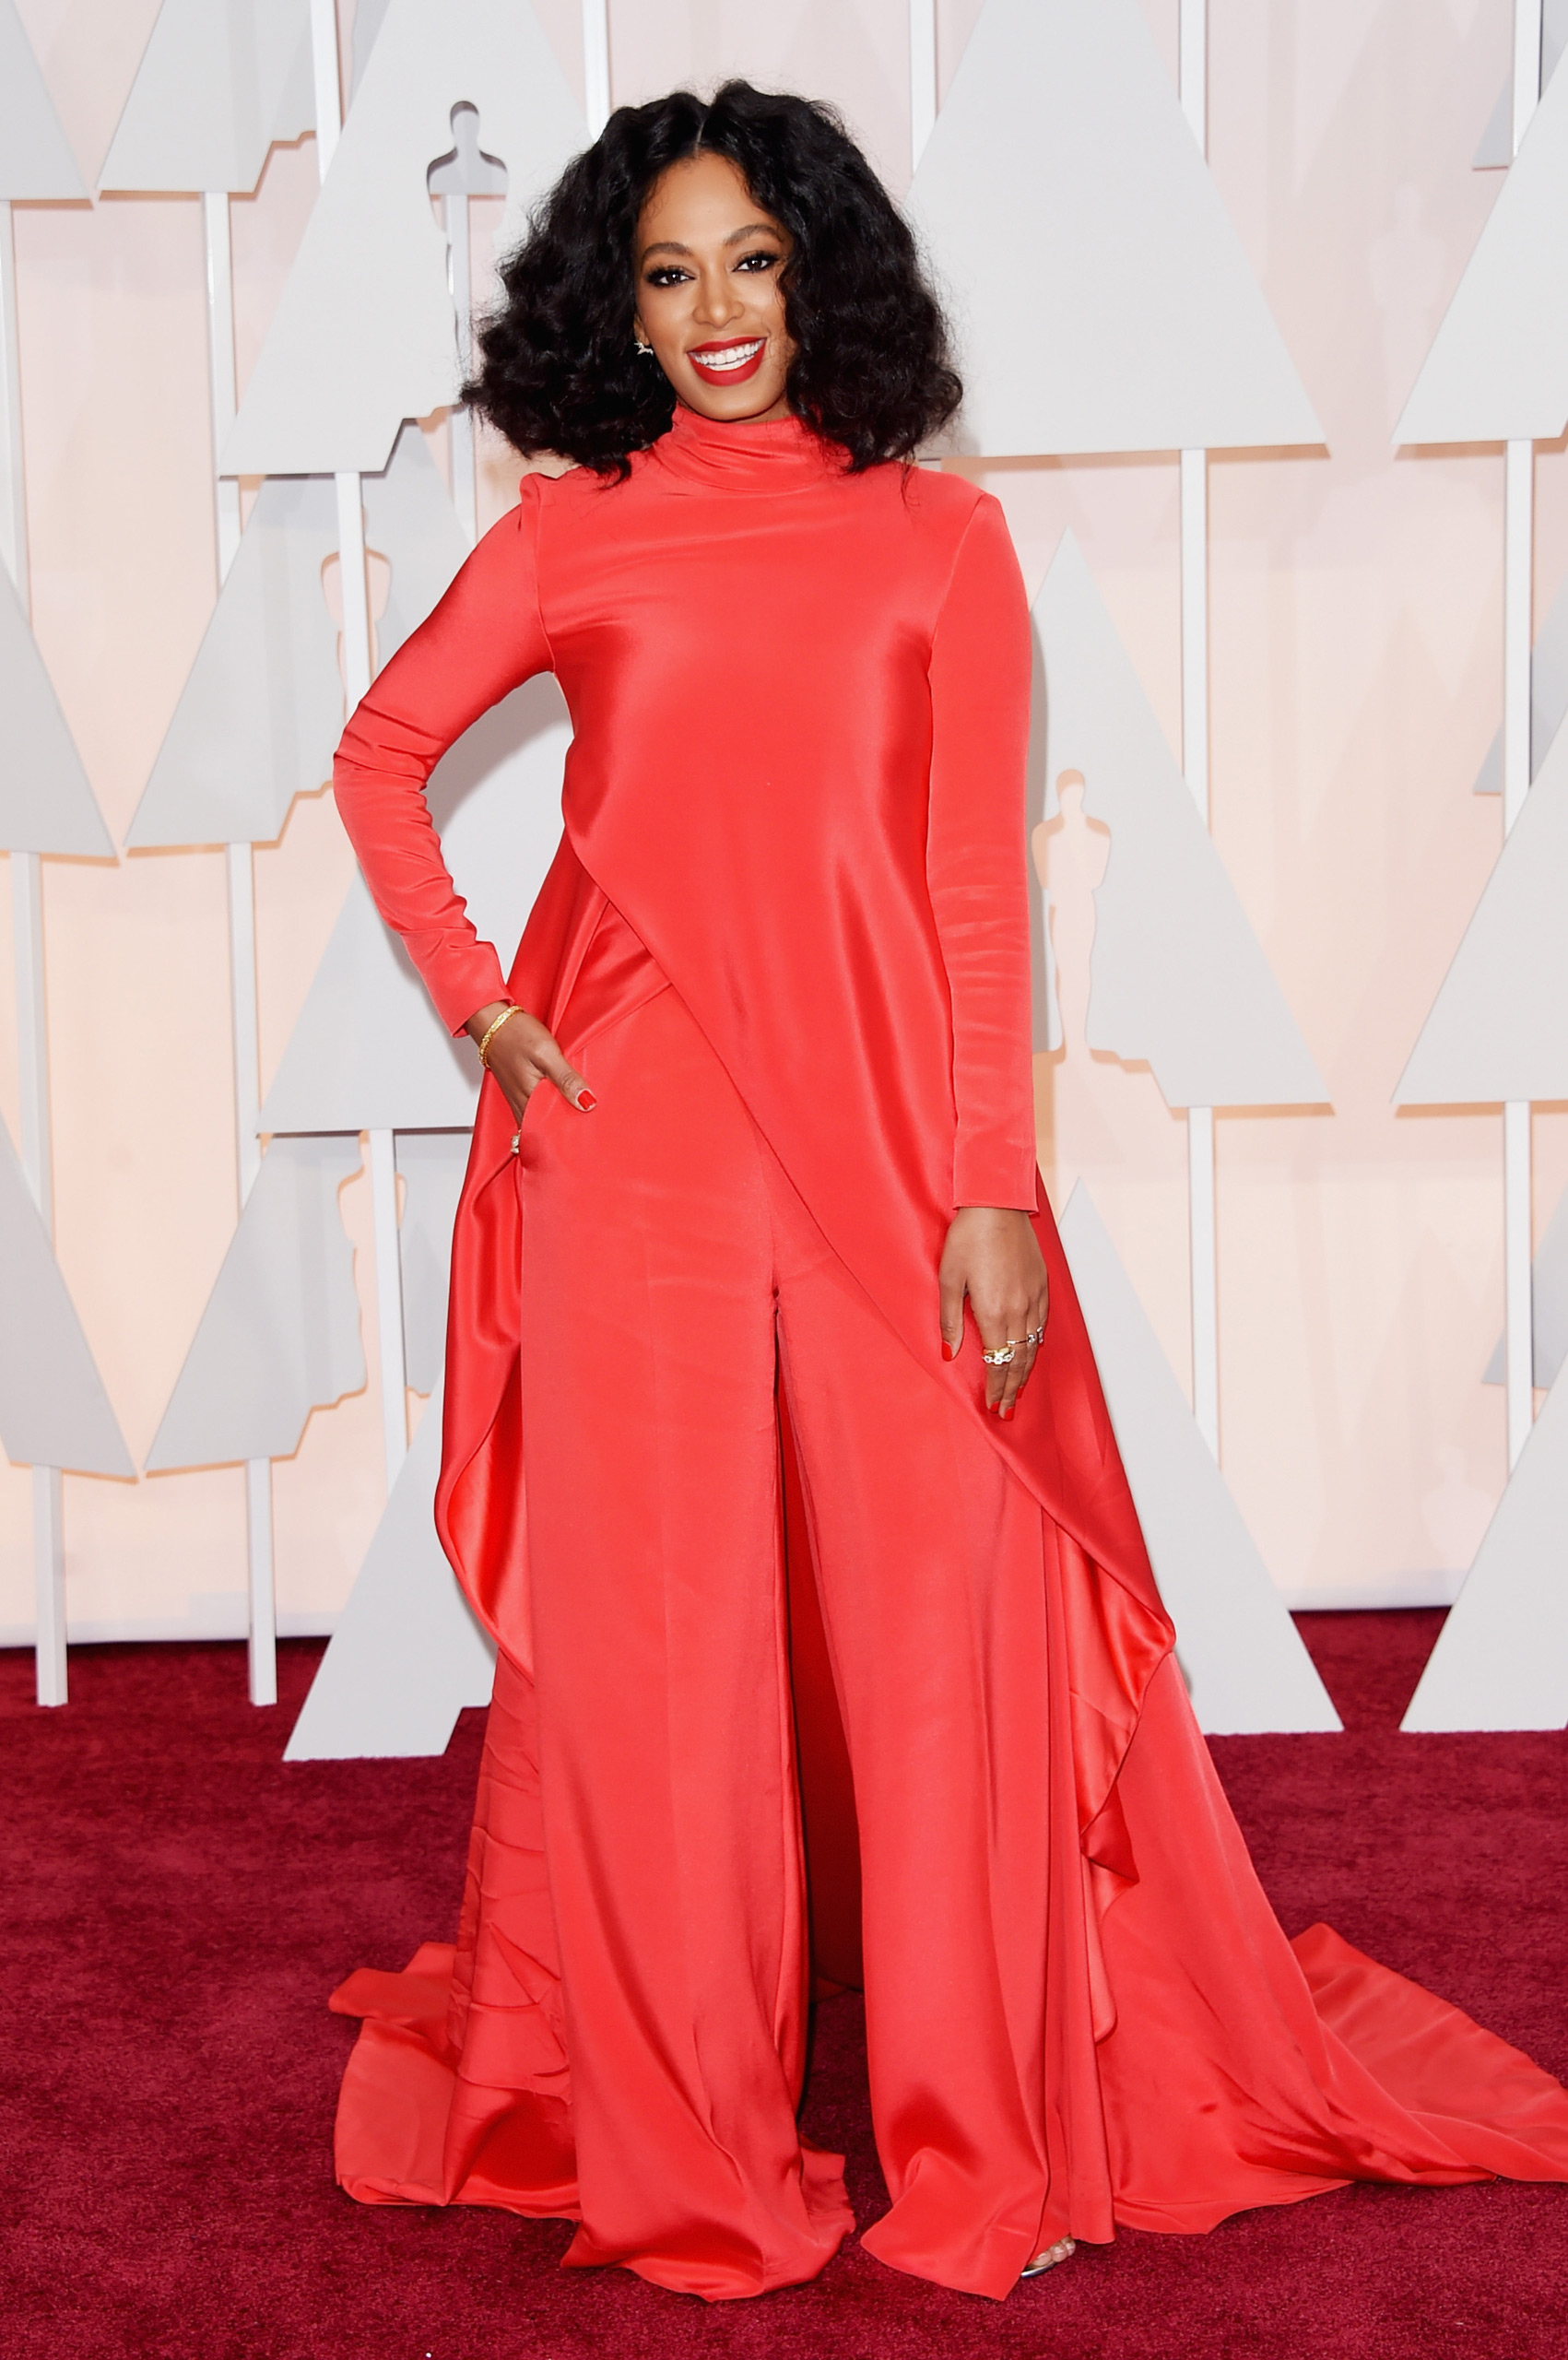 Solange Knowles attends the 87th Annual Academy Awards on Feb. 22, 2015 in Hollywood, Calif.